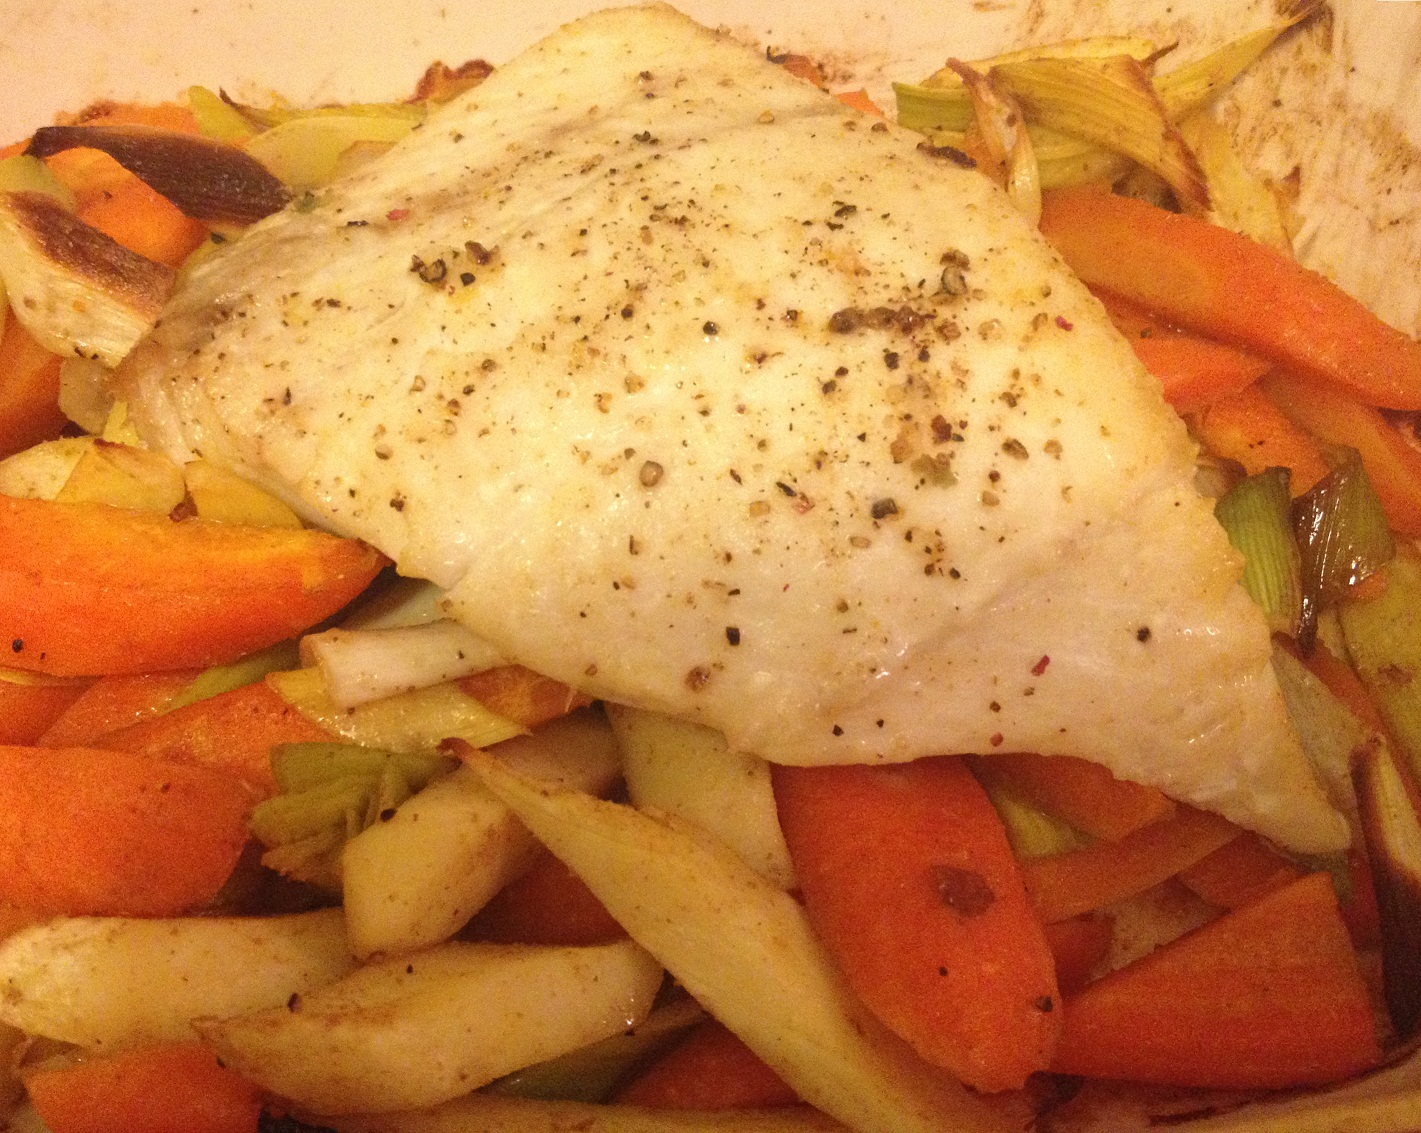 Oven Baked Halibut with Spiced Veggies